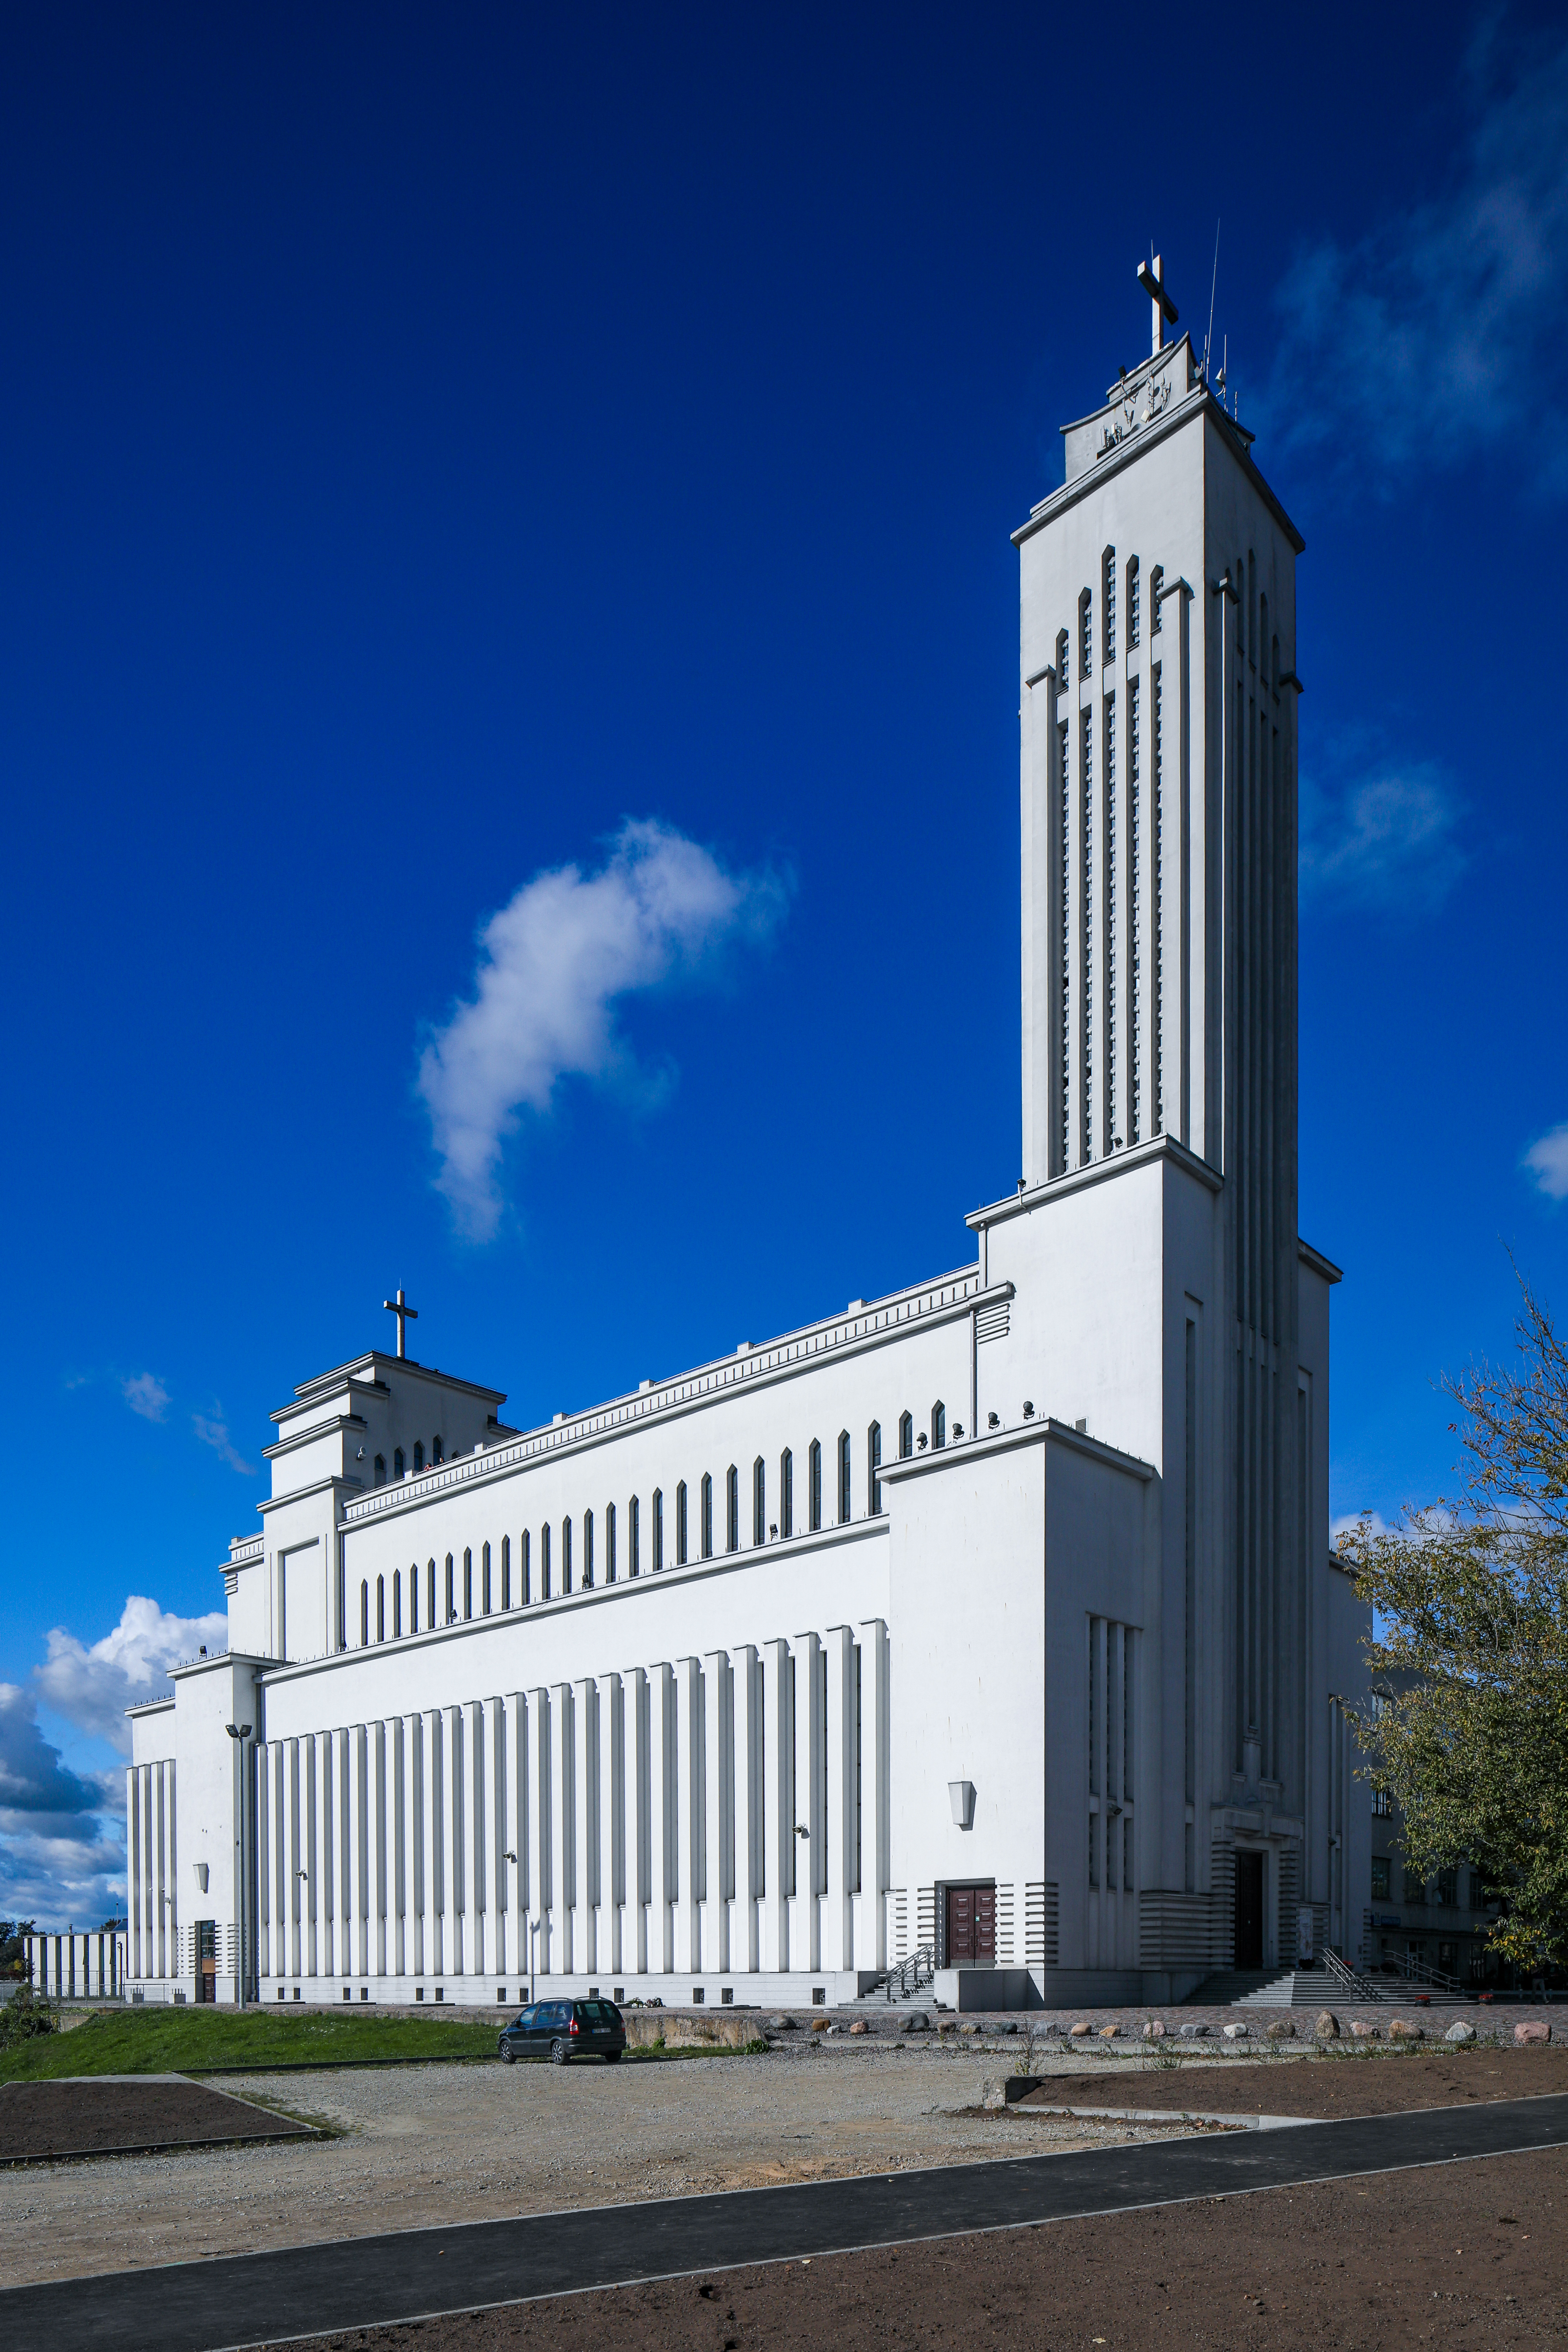 1940 - Karolis Reisonas - Resurrection Church, Kaunas, Lithuania (Restored by H. Zukauskas and A. Sprindys - 1990-2004) - 1933-40 (1)